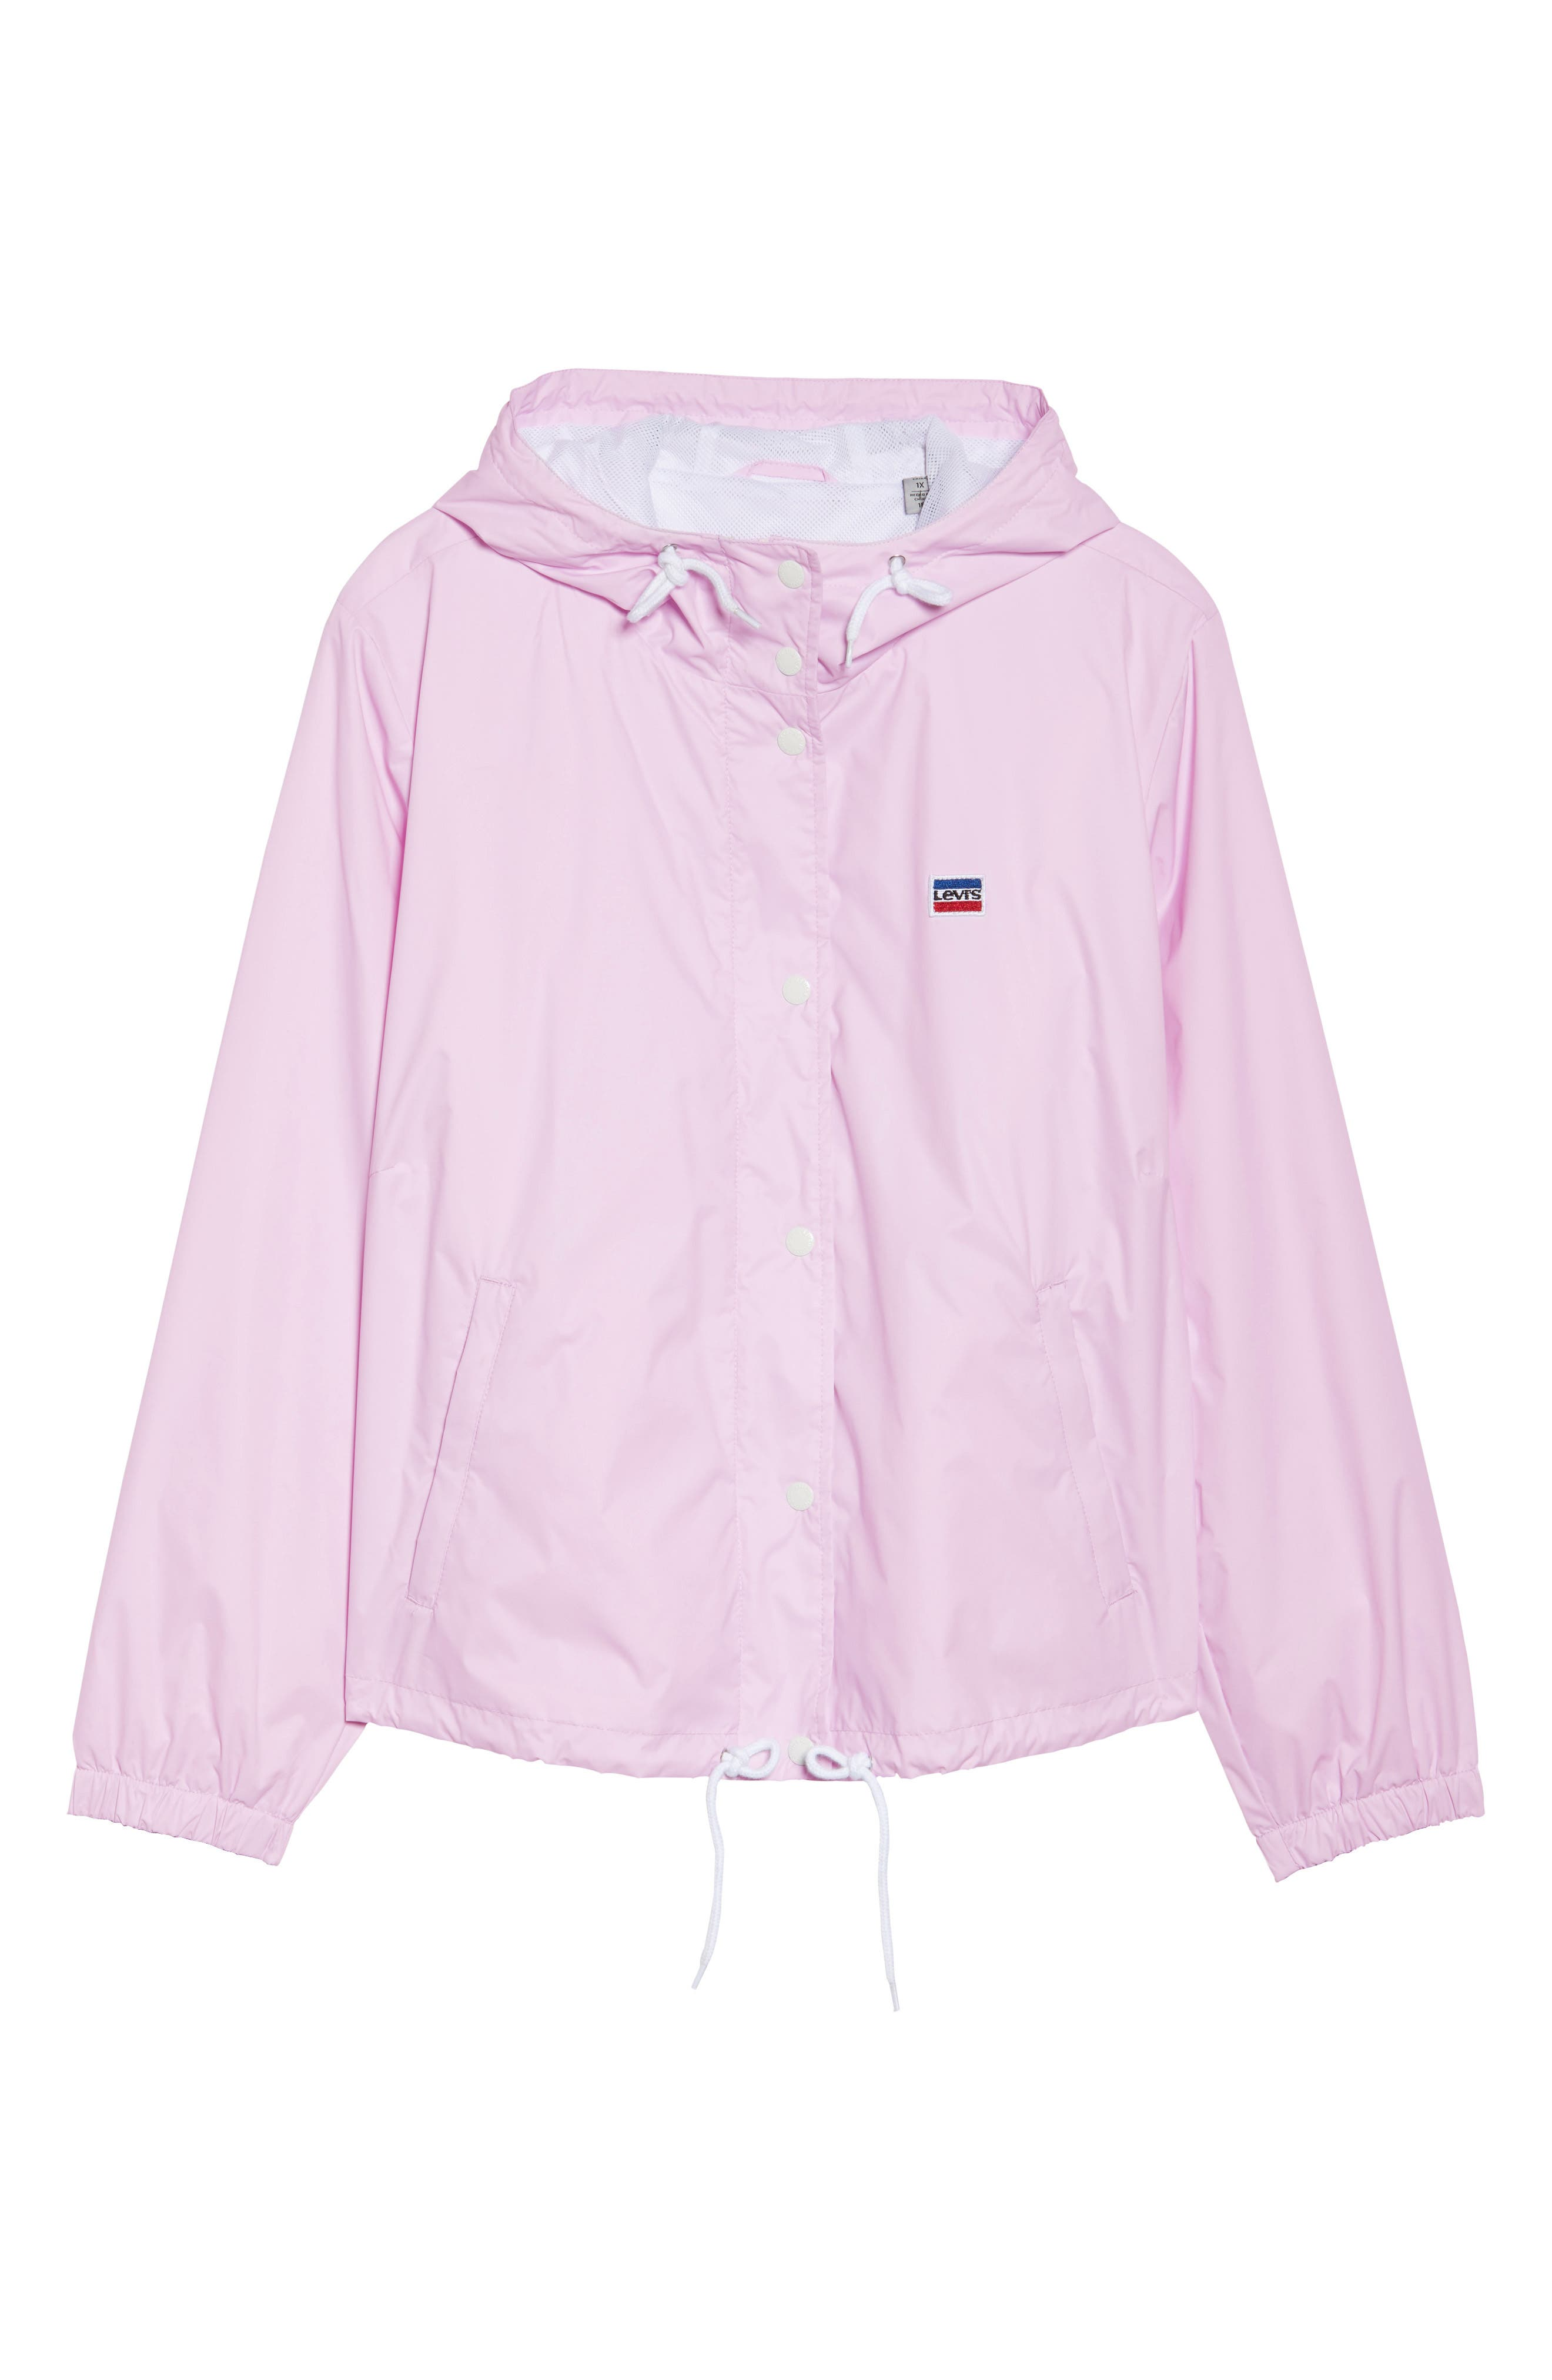 Retro Hooded Coach's Jacket,                             Alternate thumbnail 20, color,